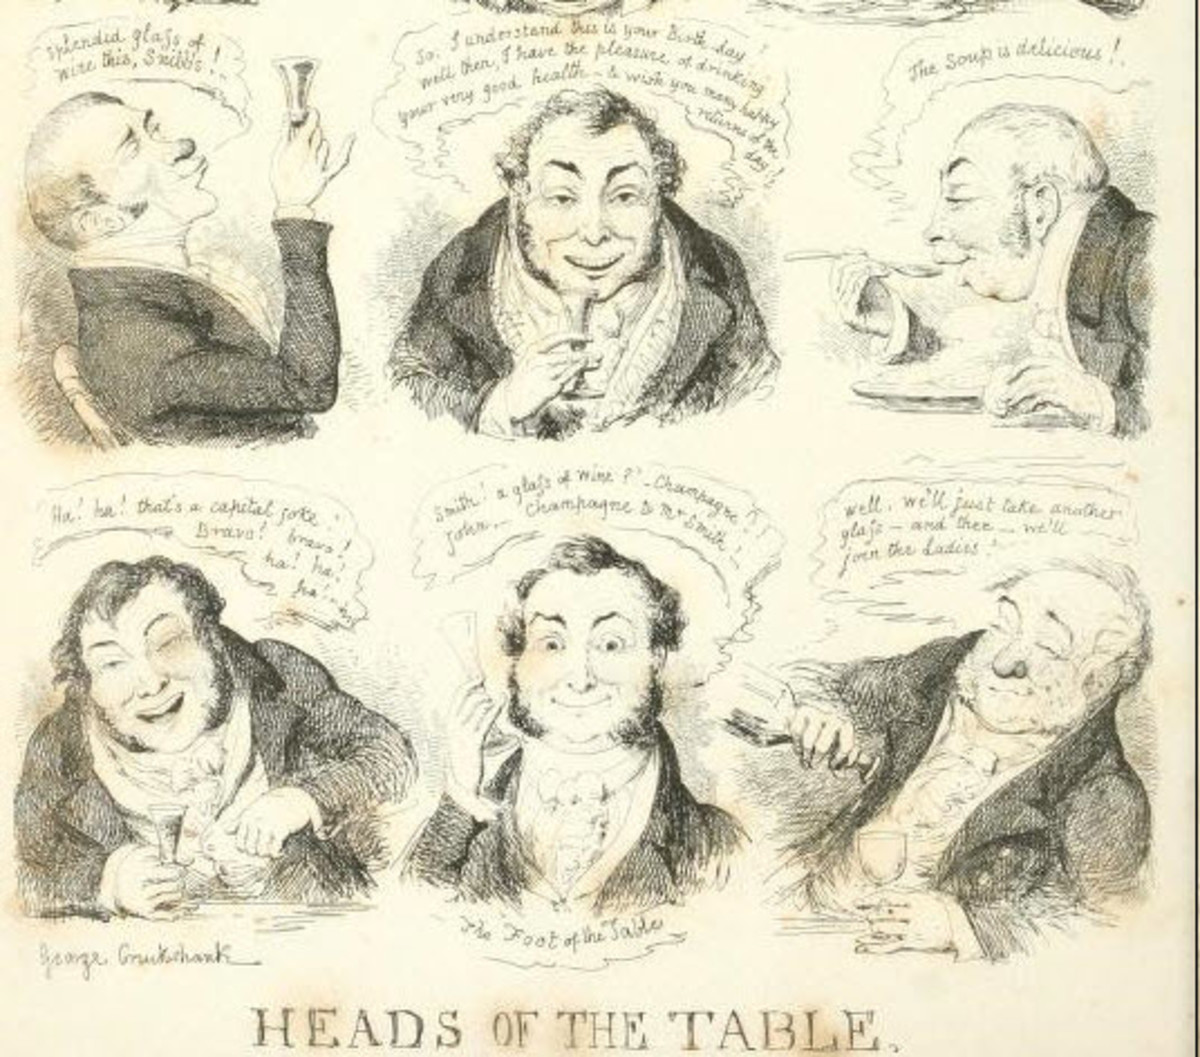 This is an example of the caricatures that George Cruikshank often produced for various magazines.